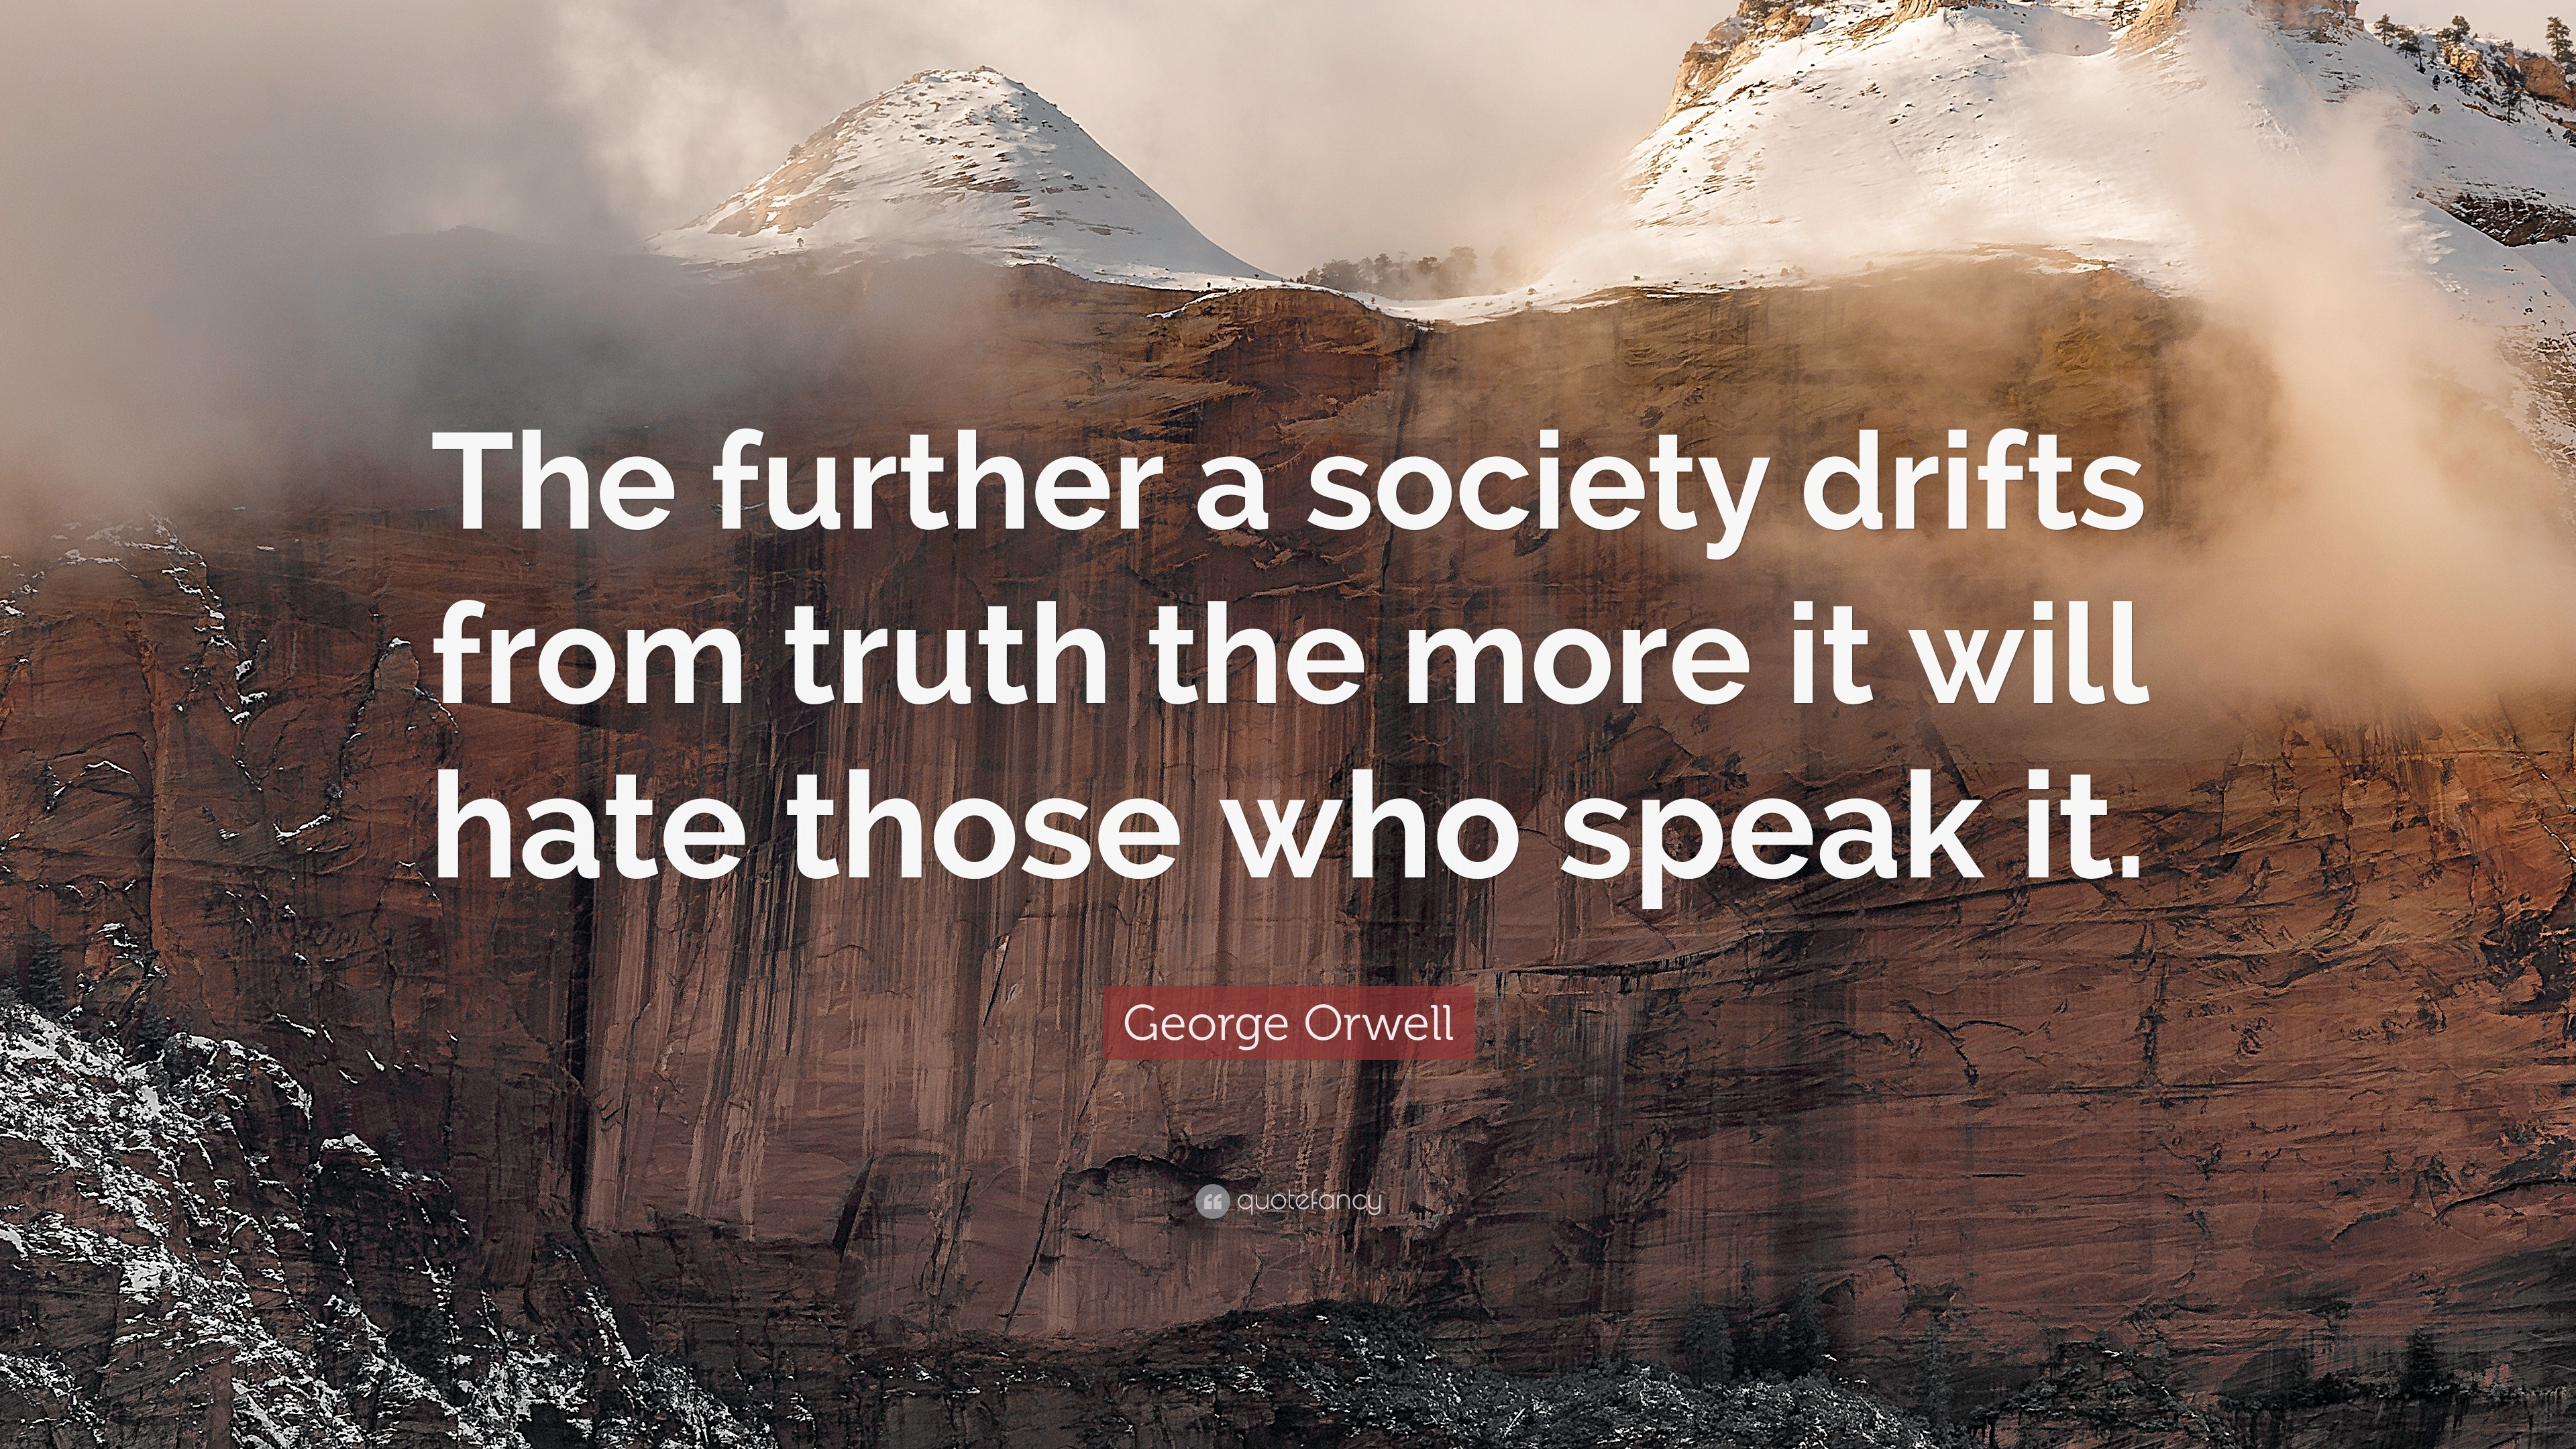 1714384-George-Orwell-Quote-The-further-a-society-drifts-from-truth-the.jpg